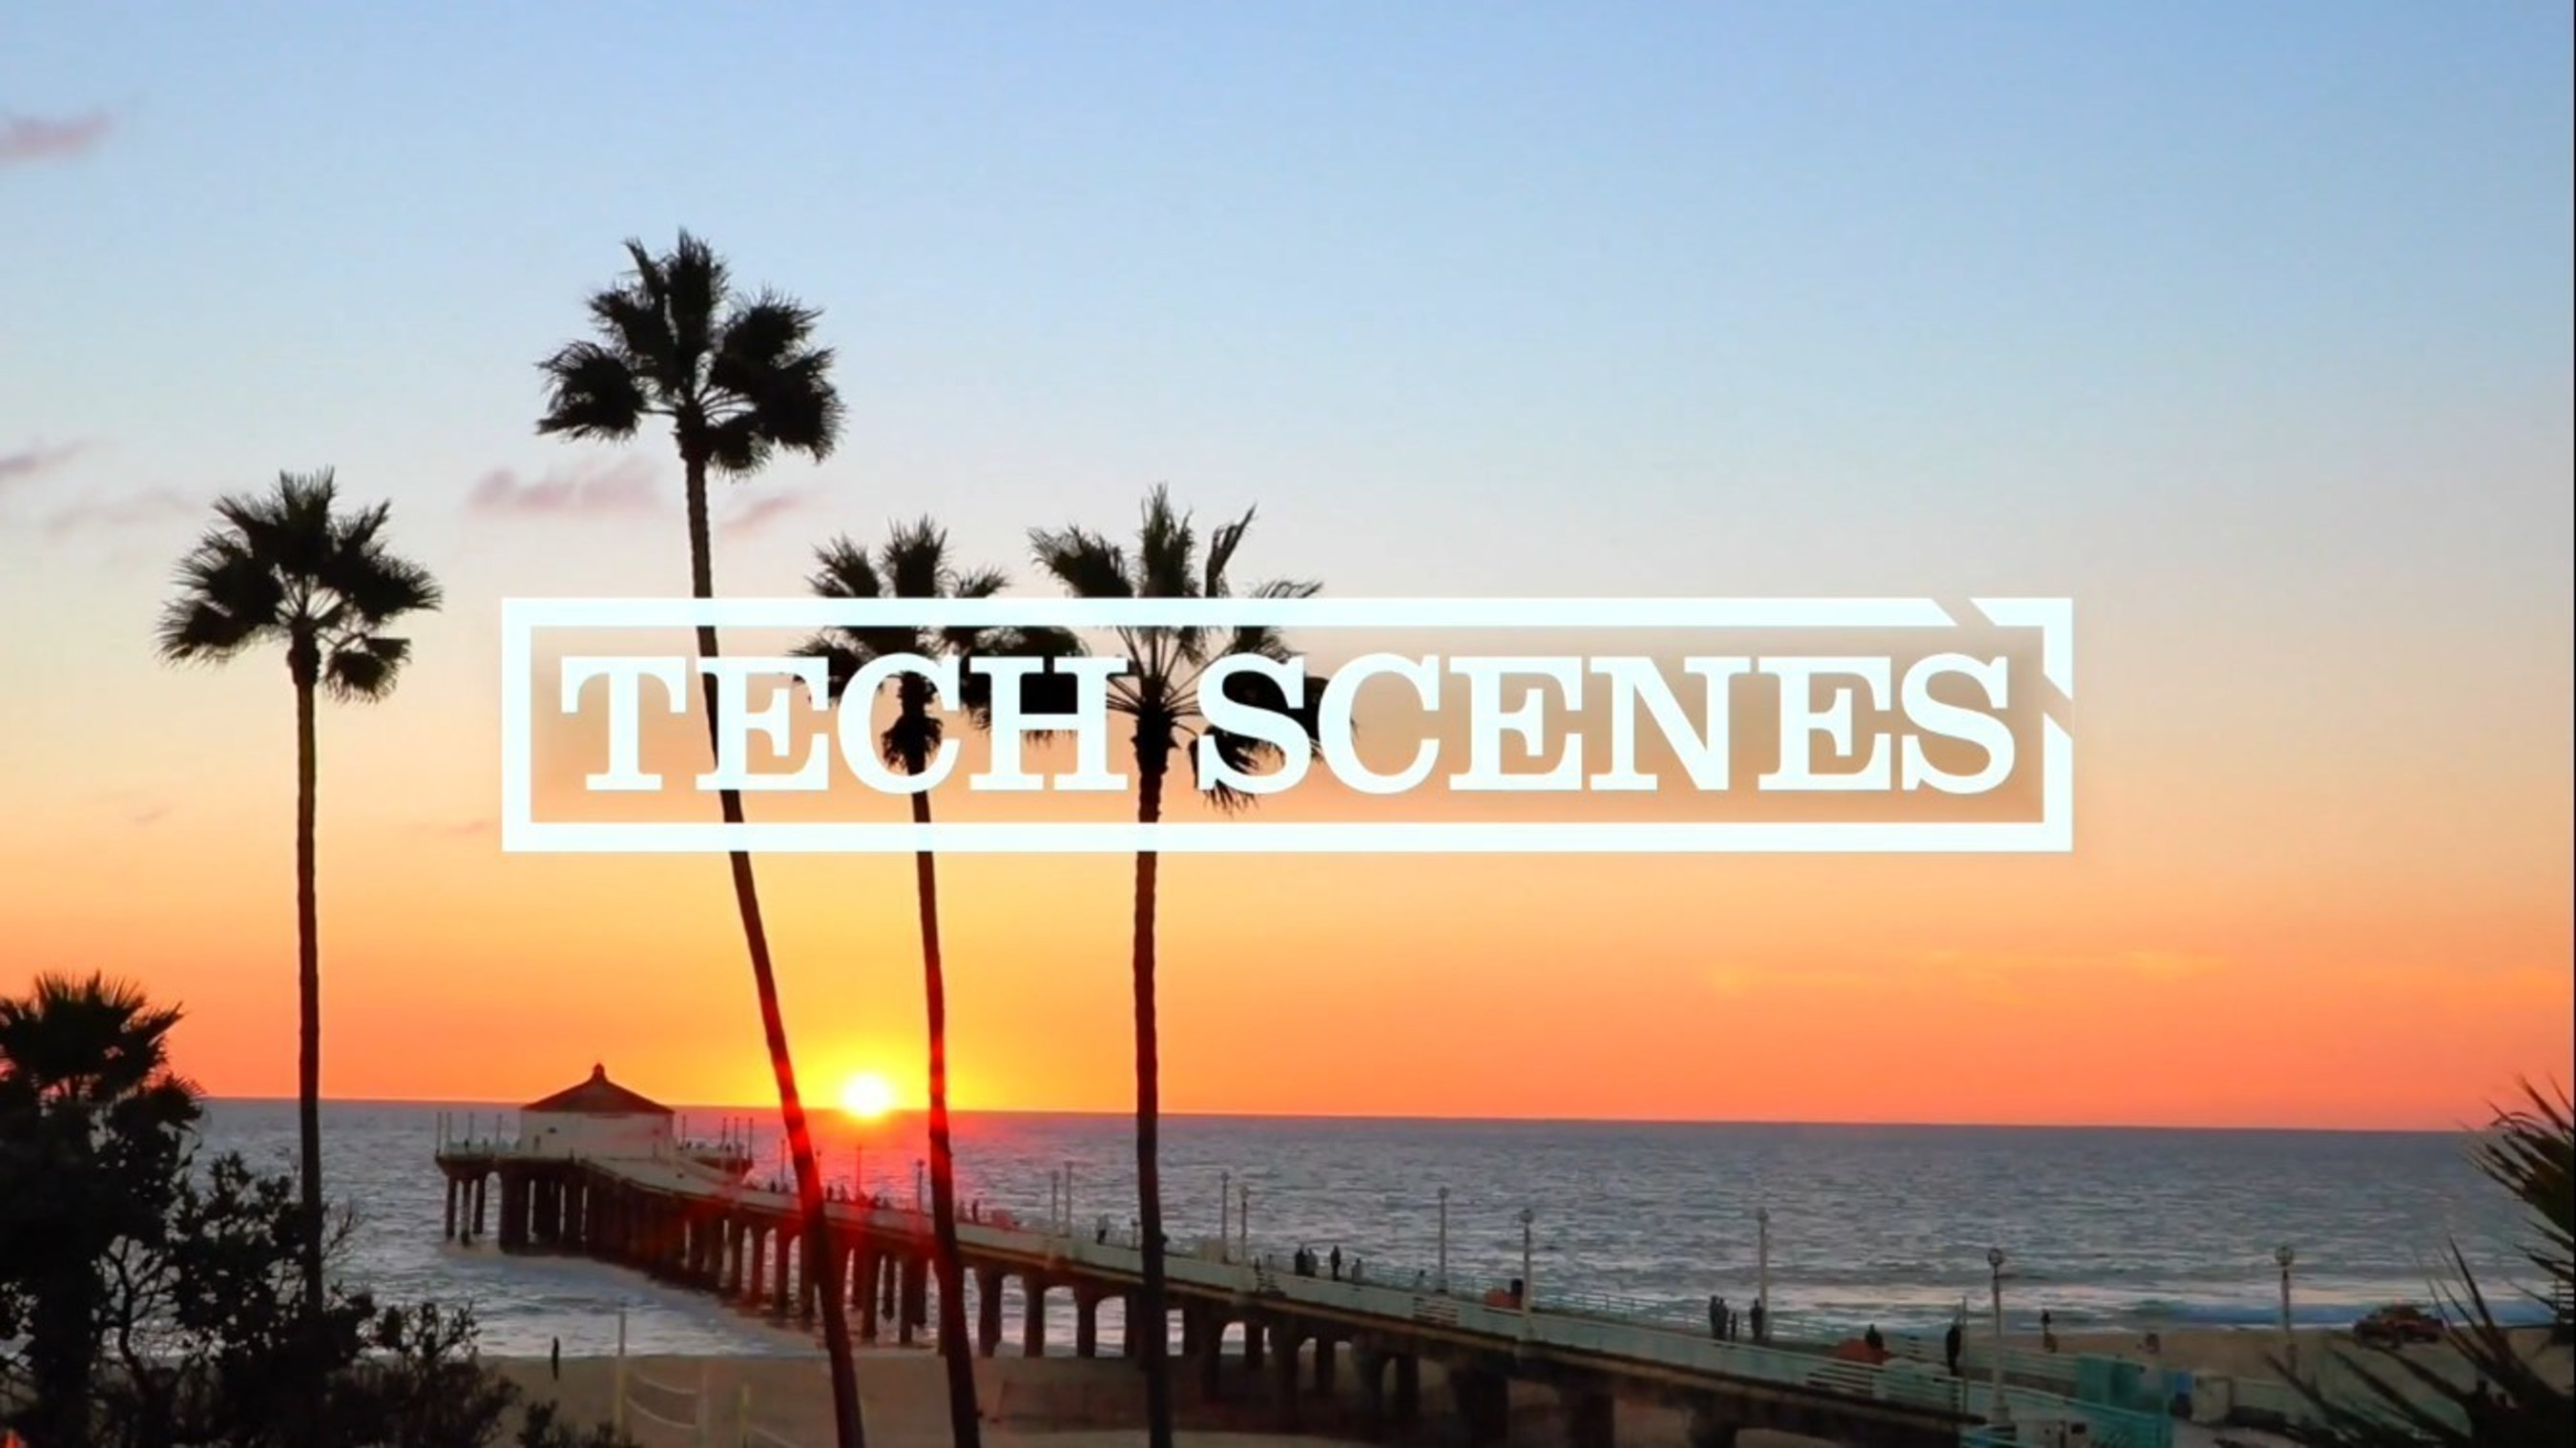 New Show 'Tech Scenes' in Production with New Media Company Lead by Change